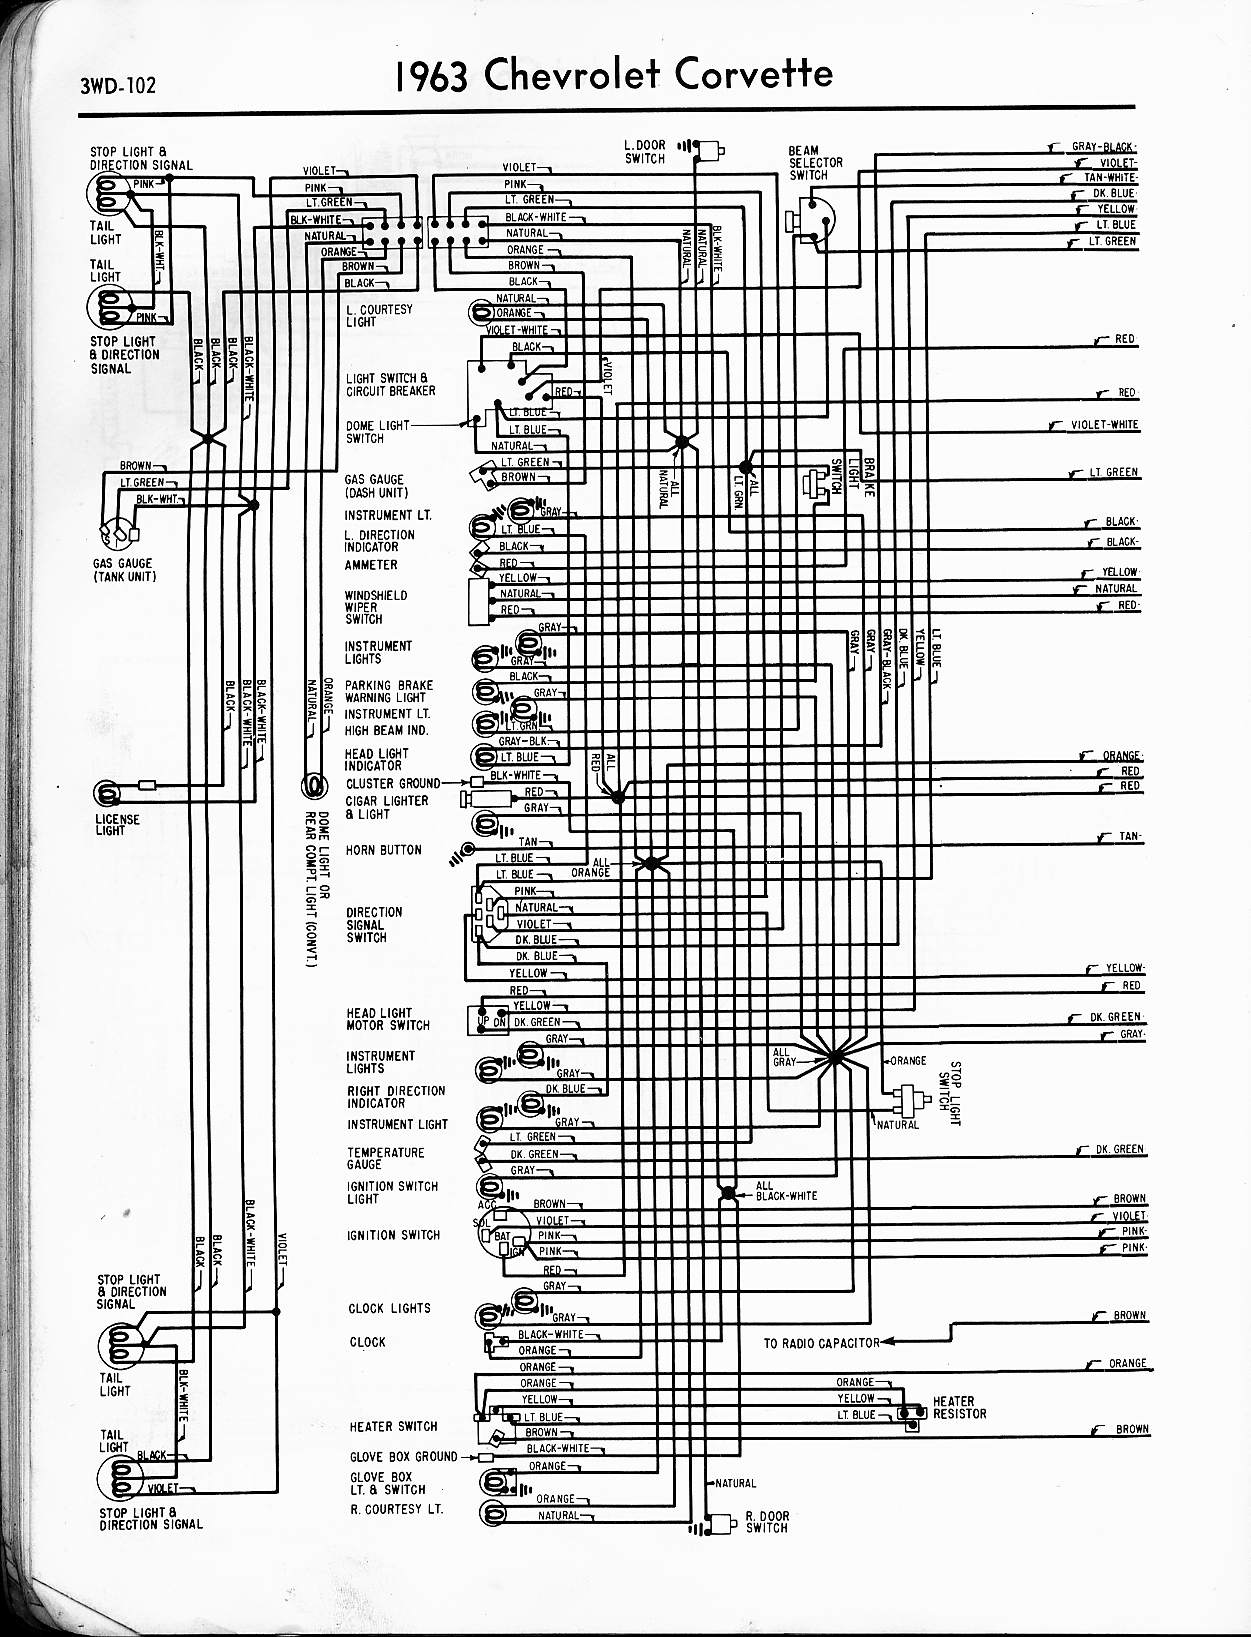 1963 Nova Wiring Schematic Library 1964 Avanti Diagram Corvette Left